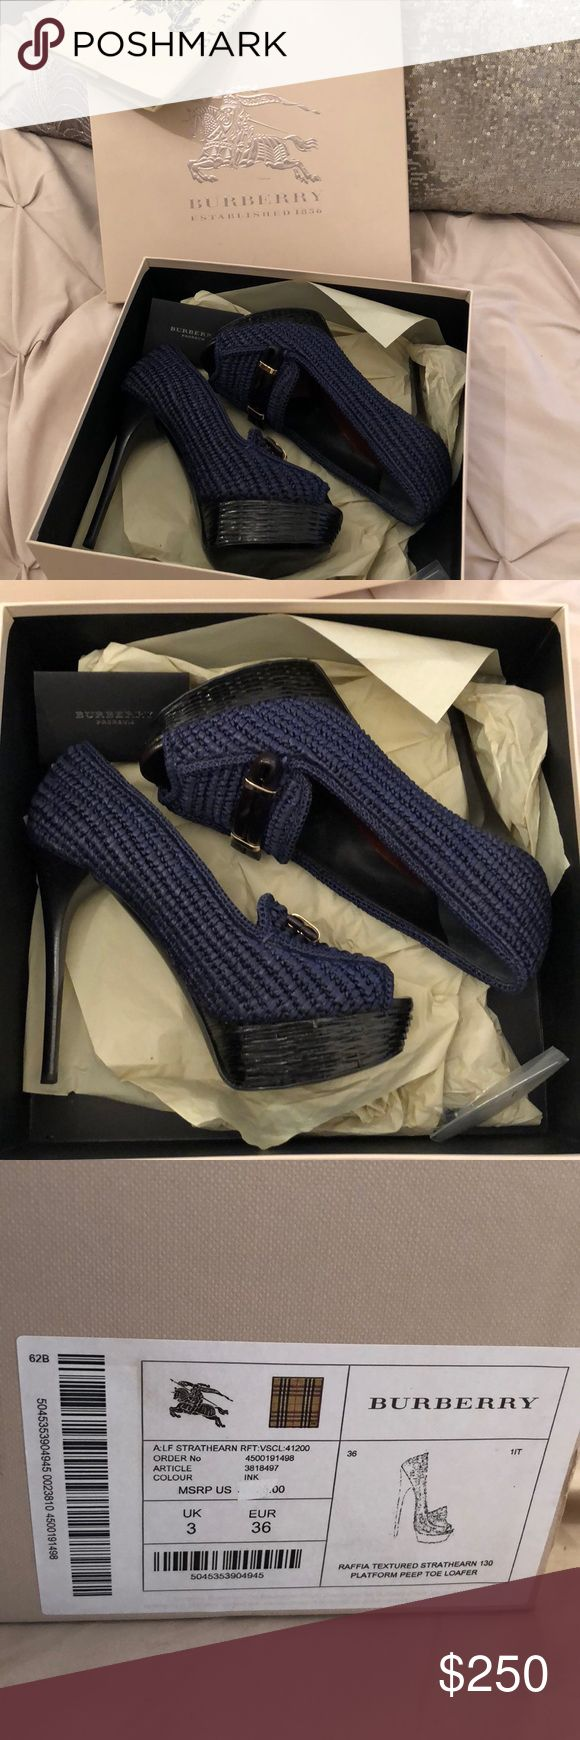 BURBERRY Gorgeous authentic BURBERRY blue tweeted heels. Never worn and in PERFECT condition. Comes with box, dust bag, heel stoppers and authenticity card. EU size 38, fits a US 7.5-8. Made in ITALY! Burberry Shoes Heels